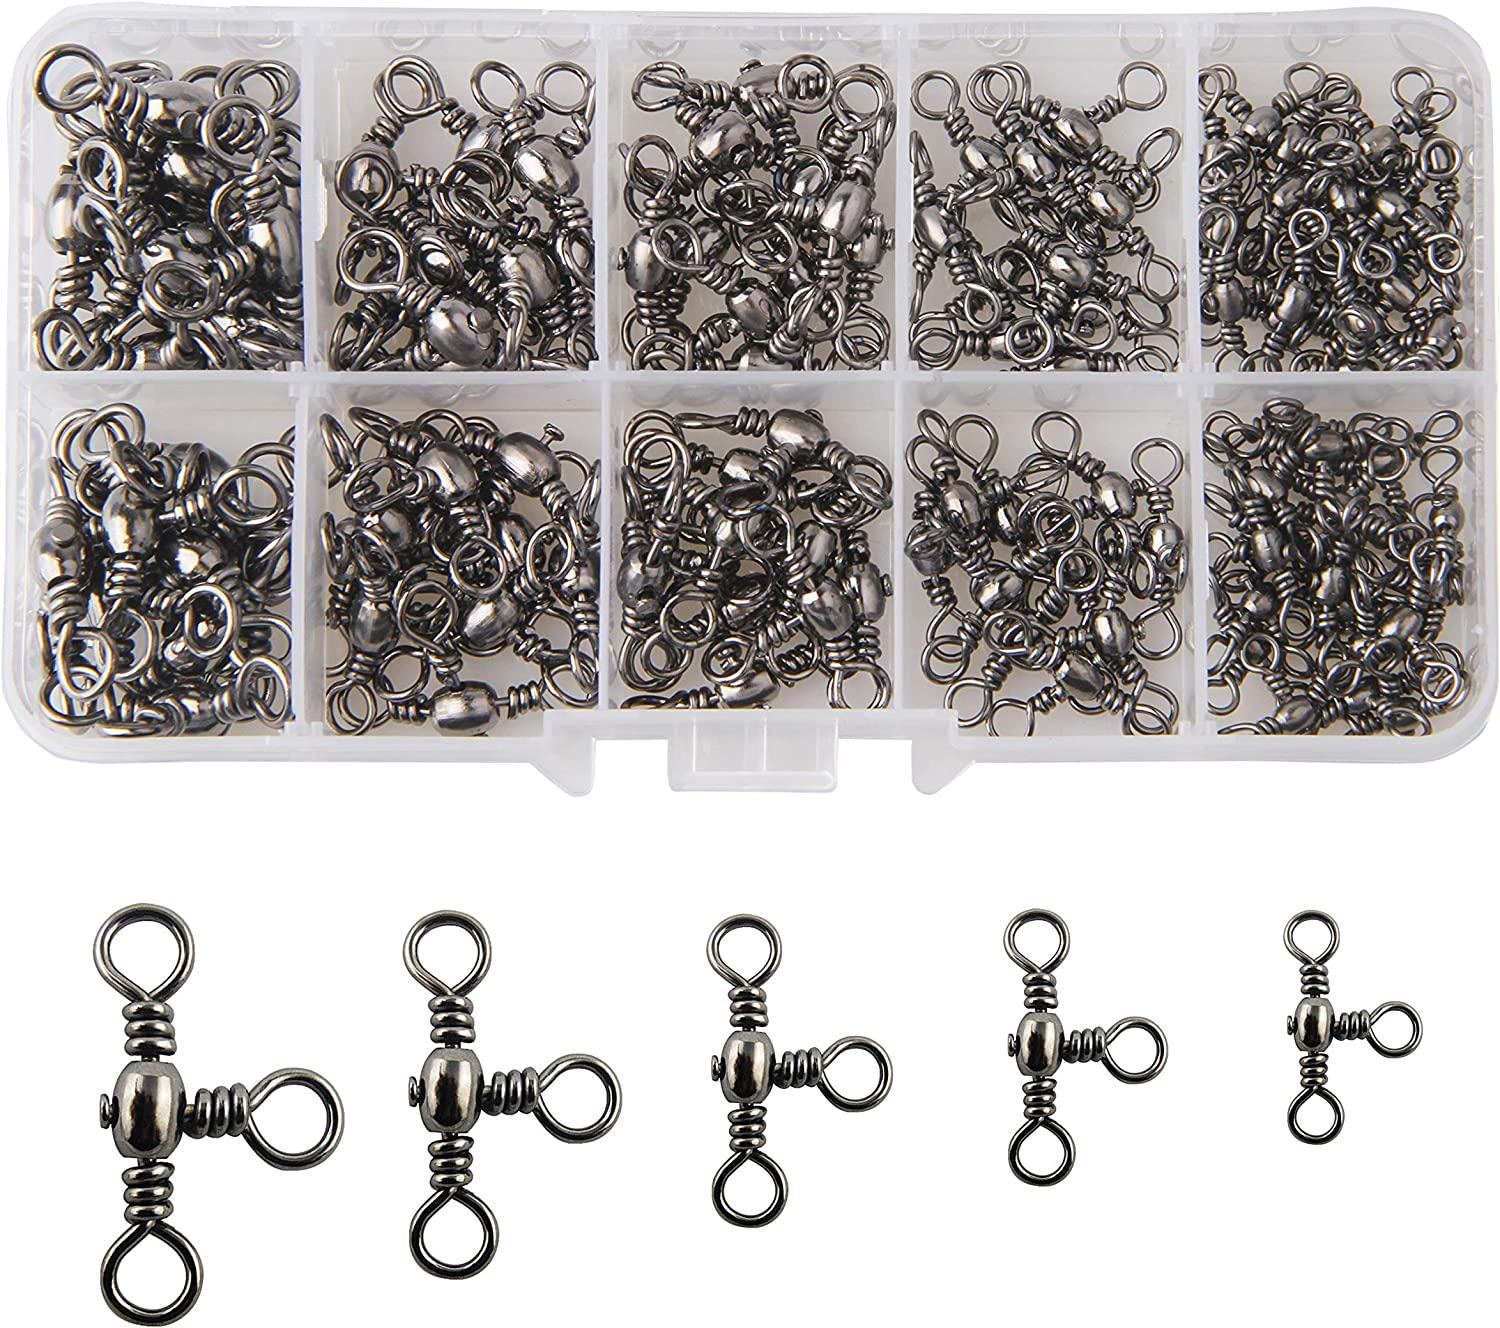 3 Way Fishing Barrel Swivel 20pcs Bearing Brass Rolling Connector Solid Ring New